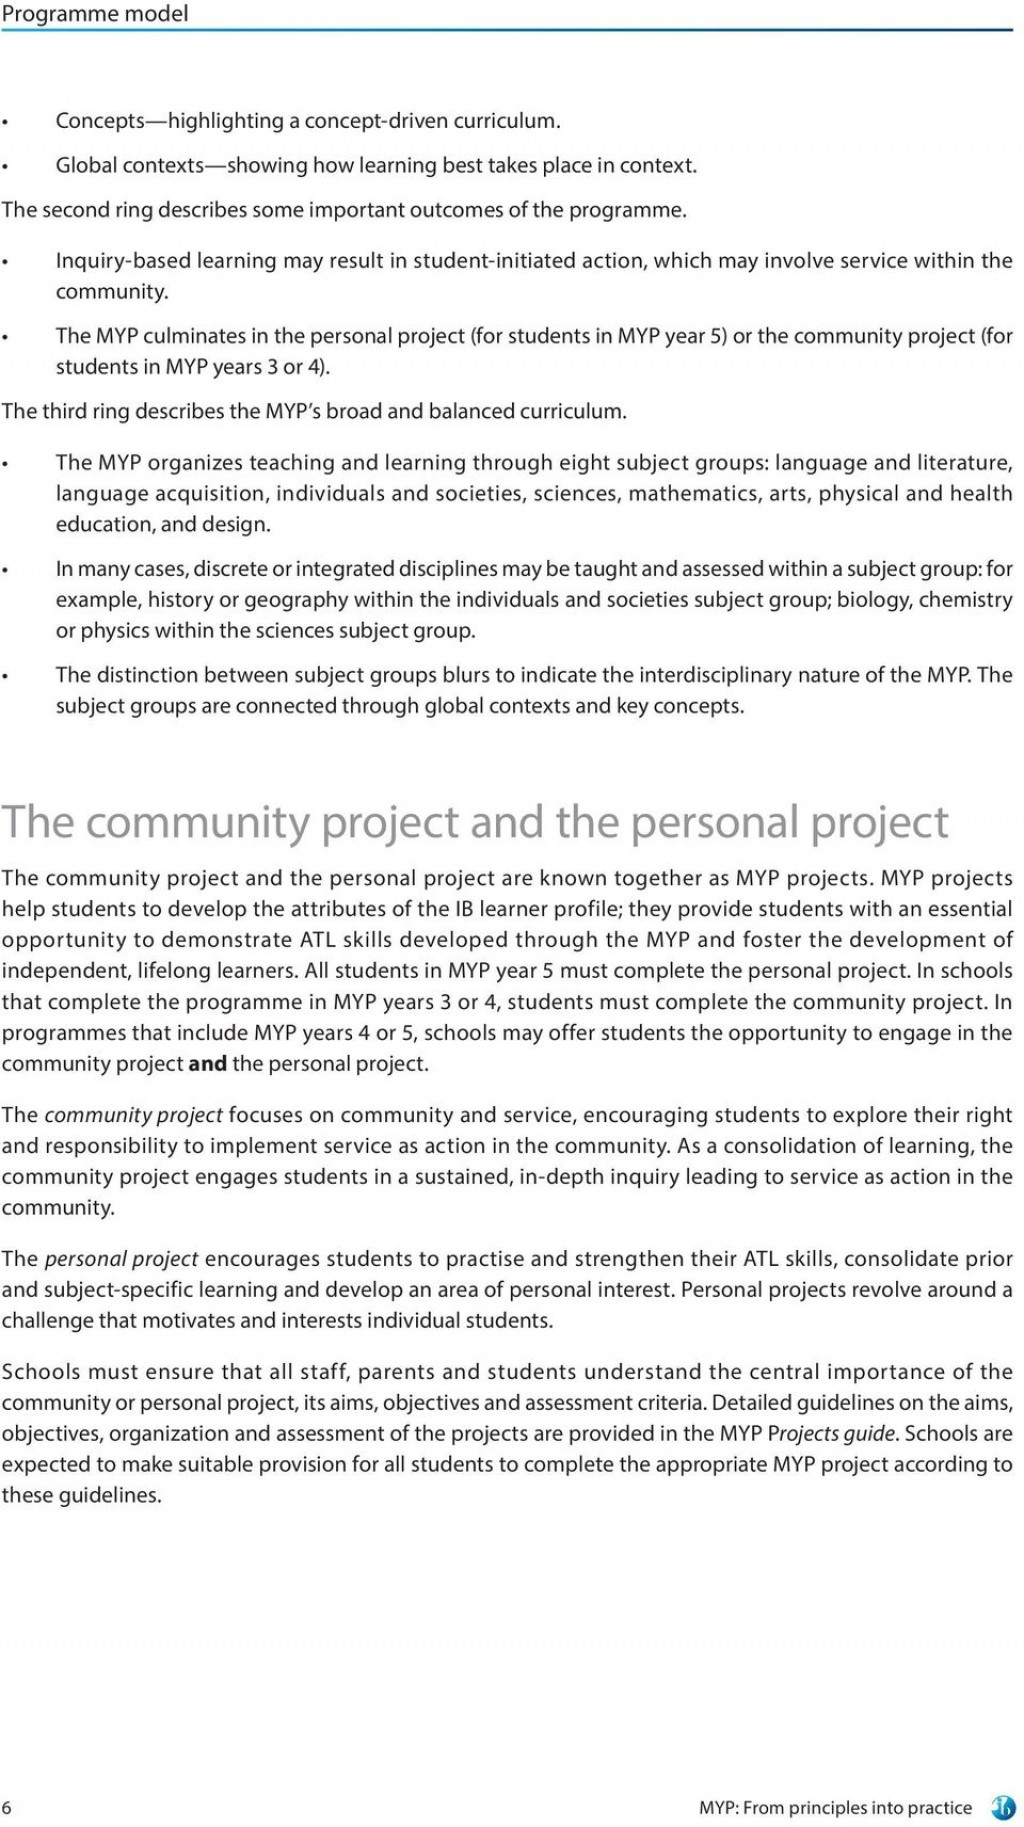 002 Essay Example Personal Project Guide Myp From Principles Into Practice For Use September Exceptional Large